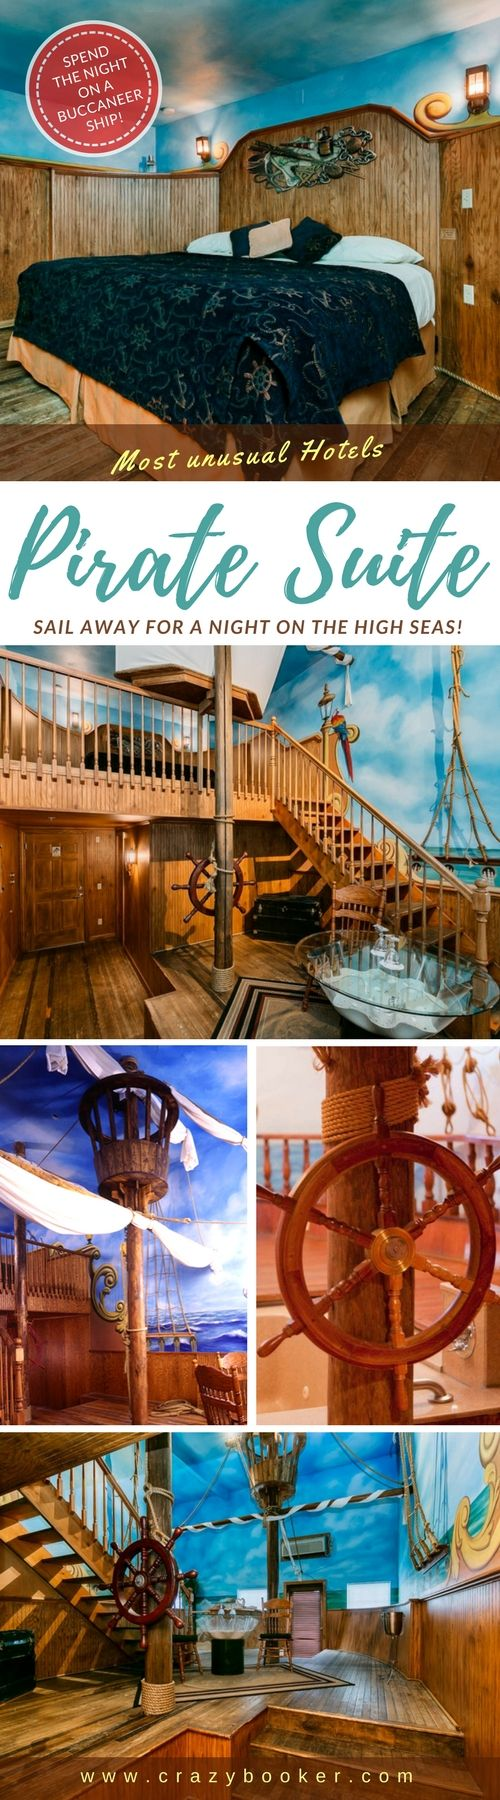 "Unique Pirates Suite in Utah #unitedstates | This #Pirate themed hotel room features many ""treasures"" just for the recruited guests! Step onto the deck of this vast buccaneer #ship and you will feel like you're taking off on an stimulating adventure on the high seas. The captain's quarters include a king-size bed, DVD player, and a 42"" TV. Make sure you march down the stairs and walk the plank to a private Love island. A jetted tub and a coconut shower are just the thing to relax your sea…"